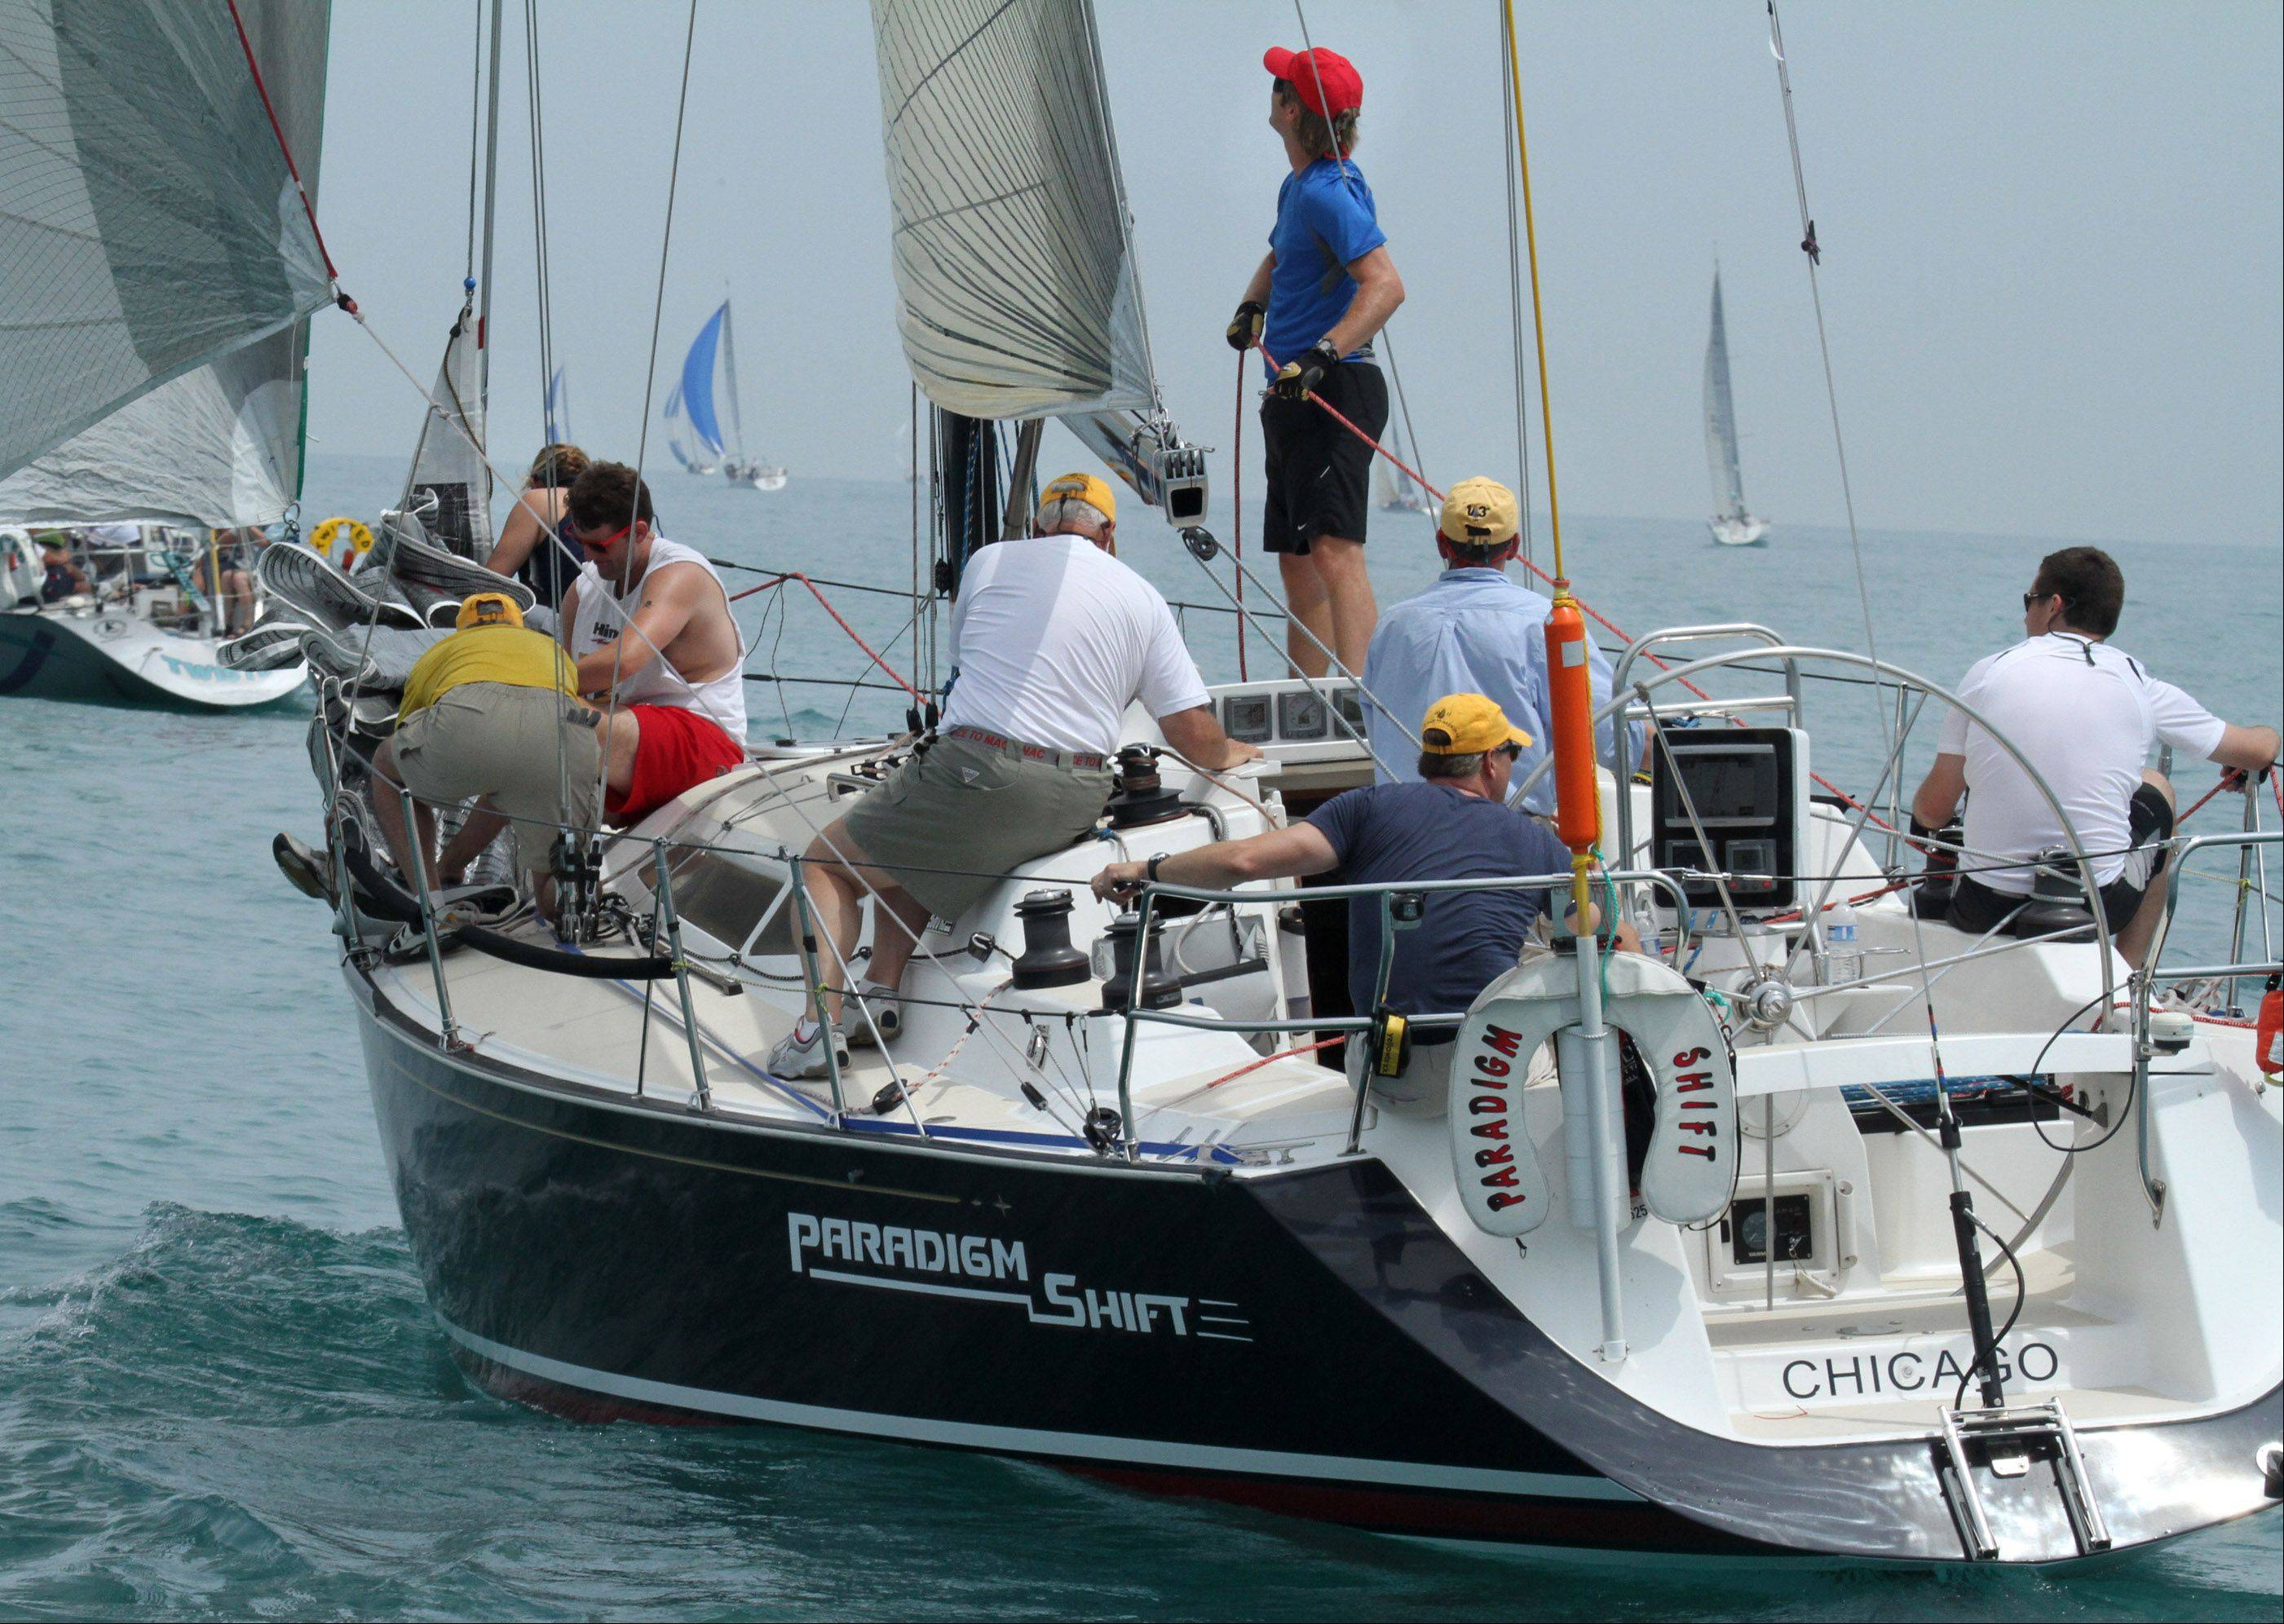 Crew members on board Paradigm Shift, USA 25578, owned by Dave Dickerson, Steve Daube, and John Brofman, of Hinsdale, with Chicago Yacht Club raise sail to start of the 104th Chicago Yacht Club Race to Mackinac on Lake Michigan near Chicago on Saturday, July 21.